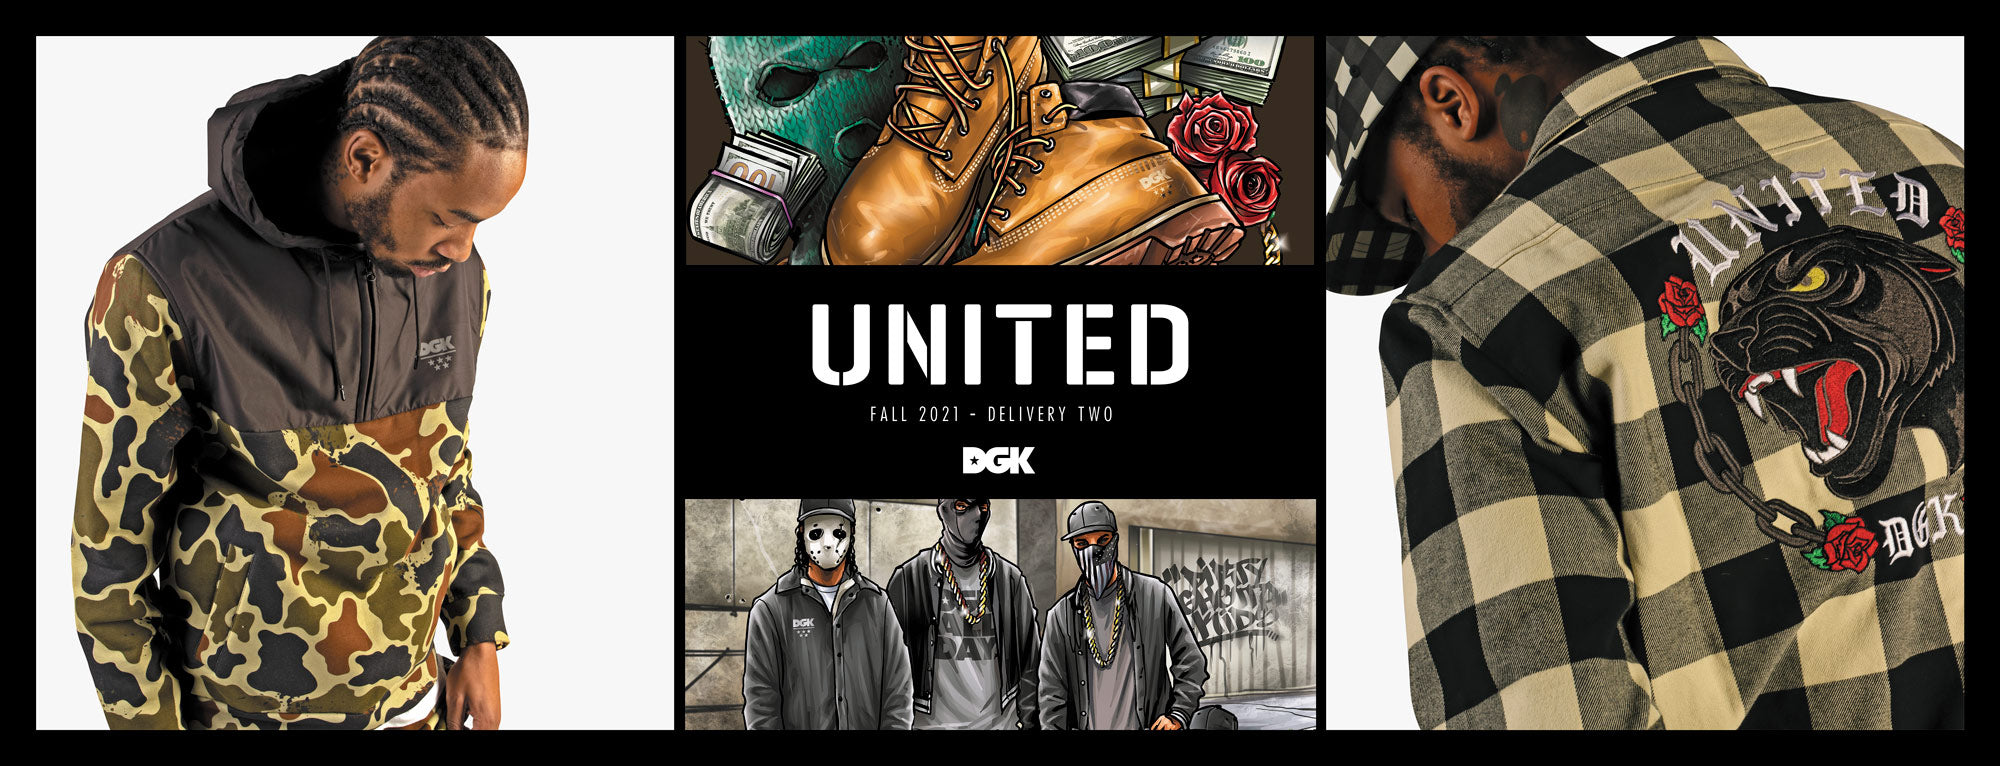 DGK Fall 21 United Collection